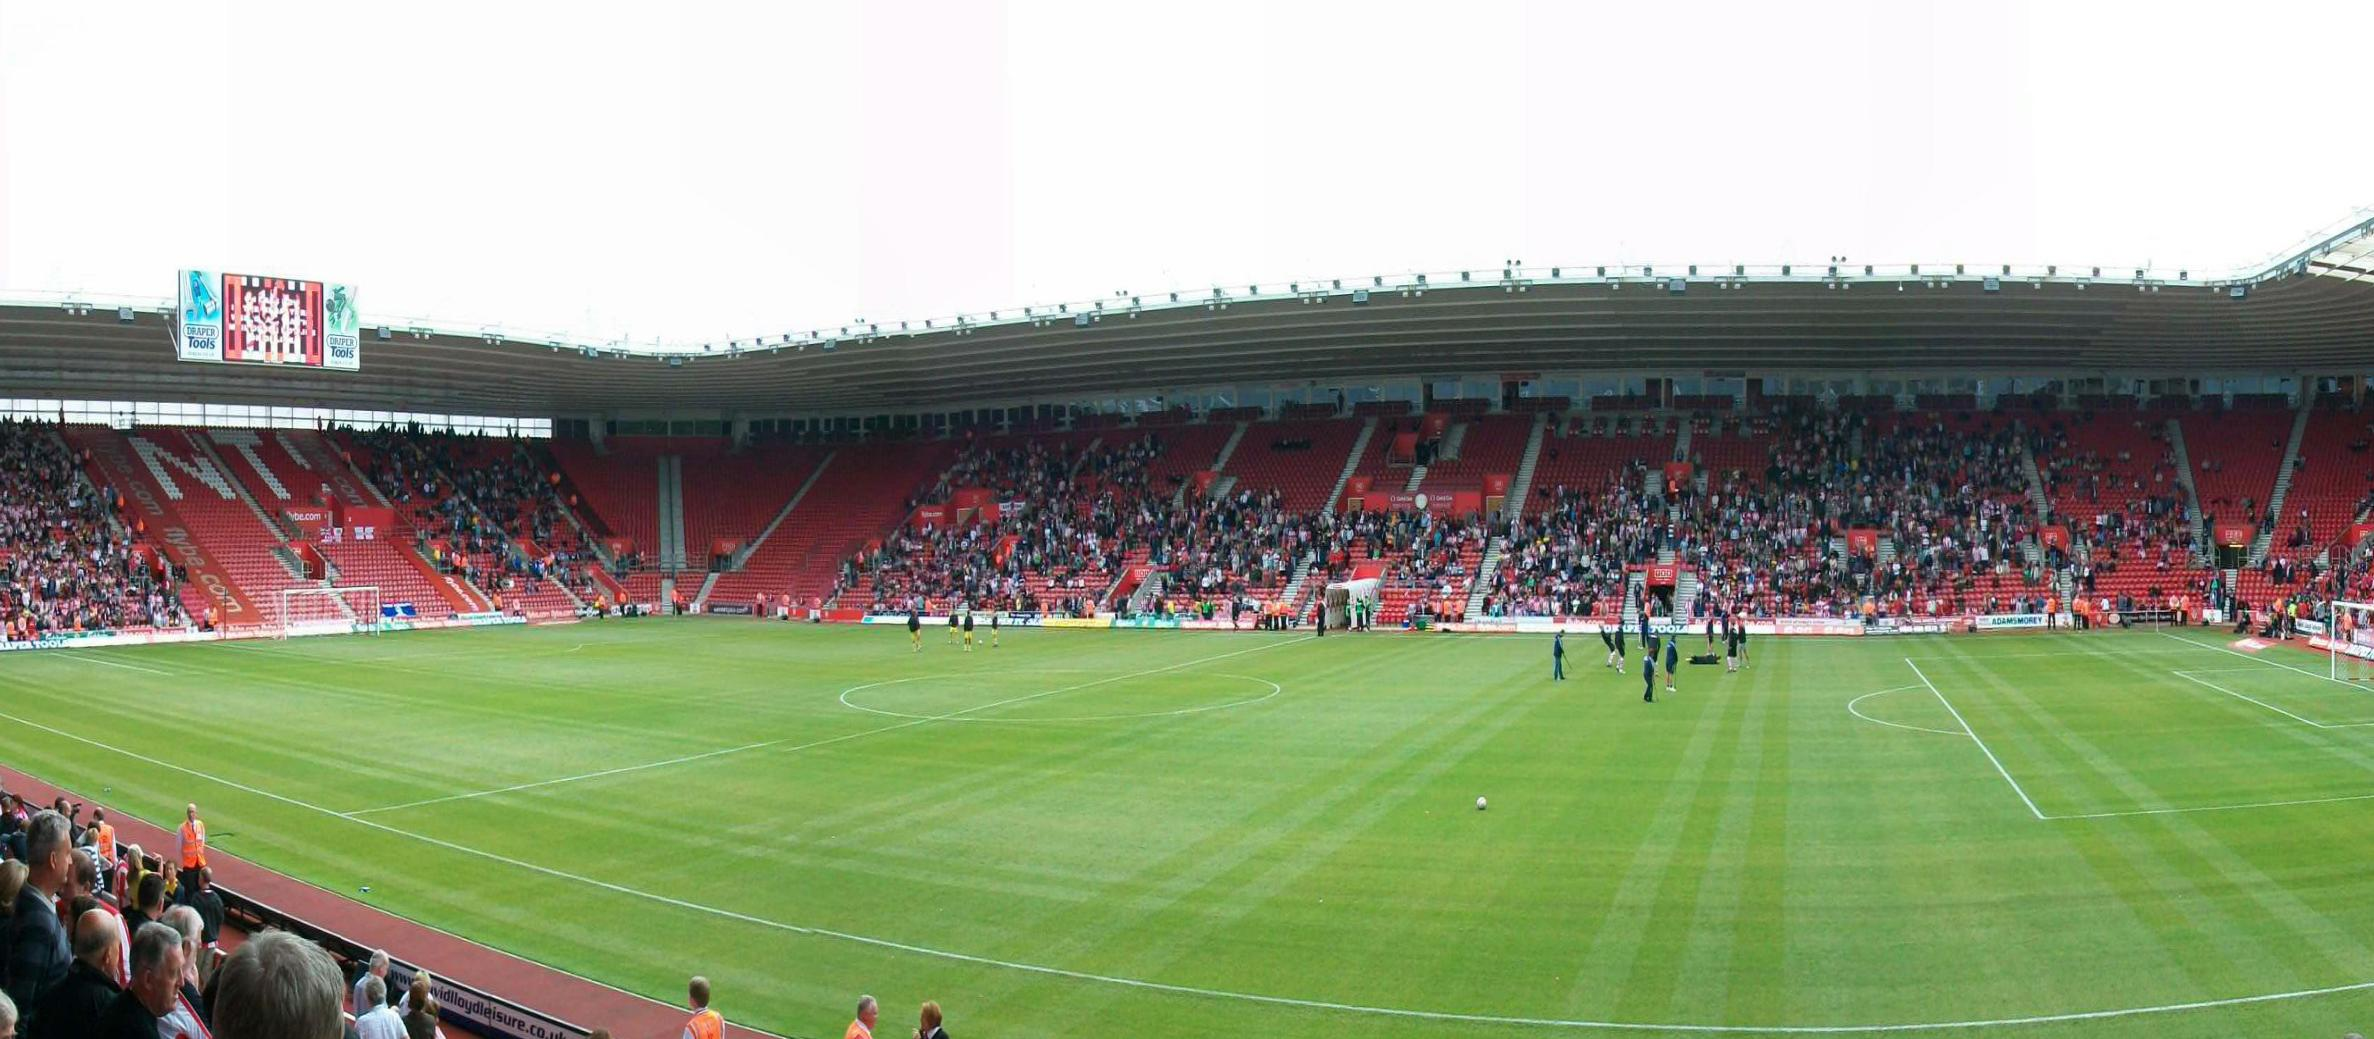 UK: Southampton football fans banned for anti-Semitic abuse